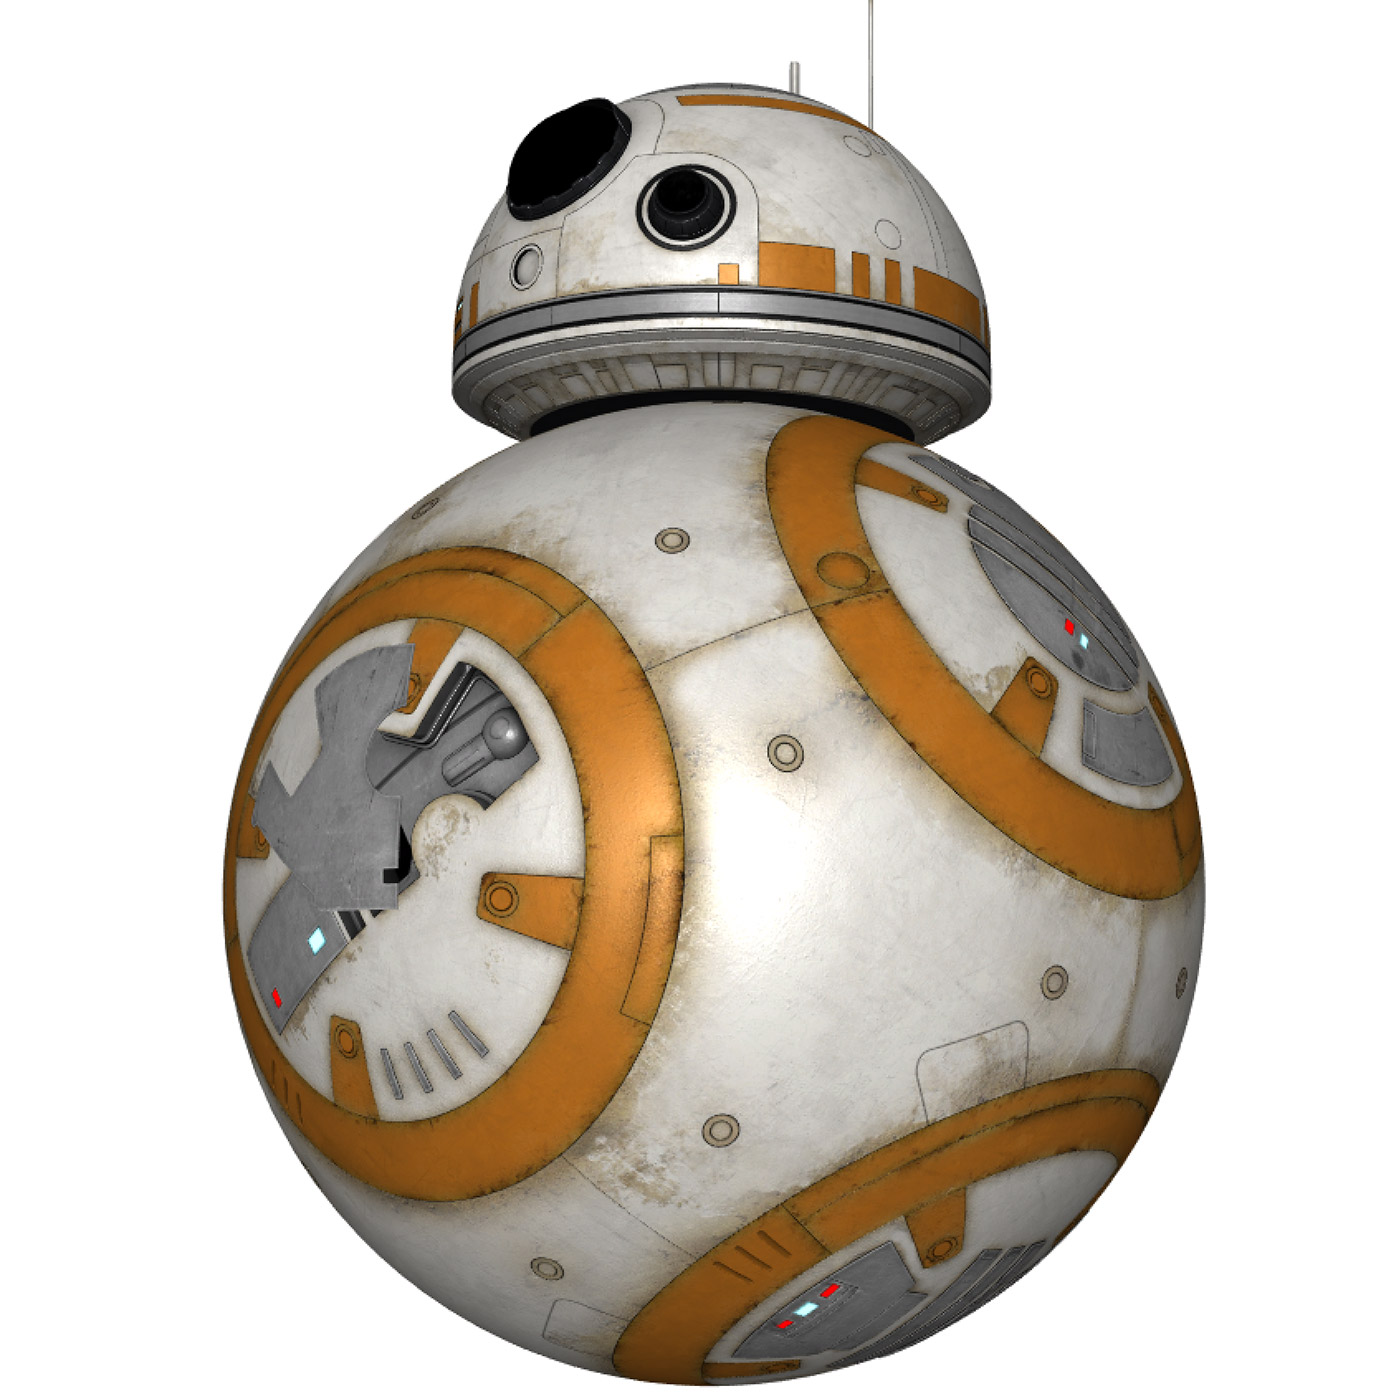 Star Wars BB-8 3D Model - your favorite BB-8 from The Force Awakens